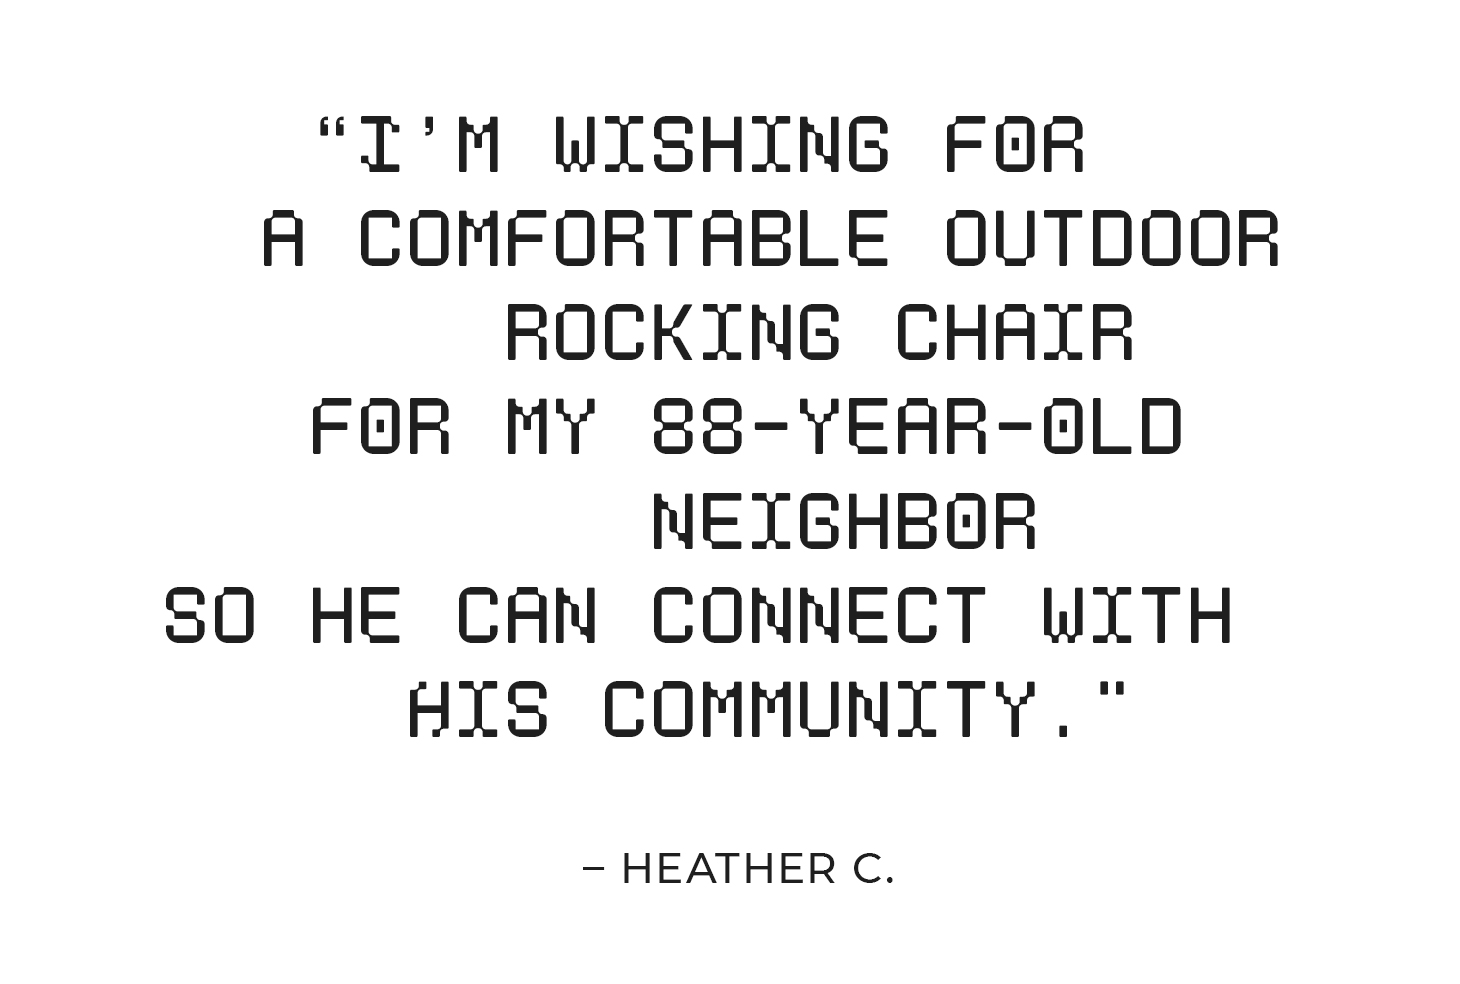 """""""I'm wishing for a comfortable outdoor rocking chair for my 88-year-old neighbor so he can connect with his community."""" – Heather C."""